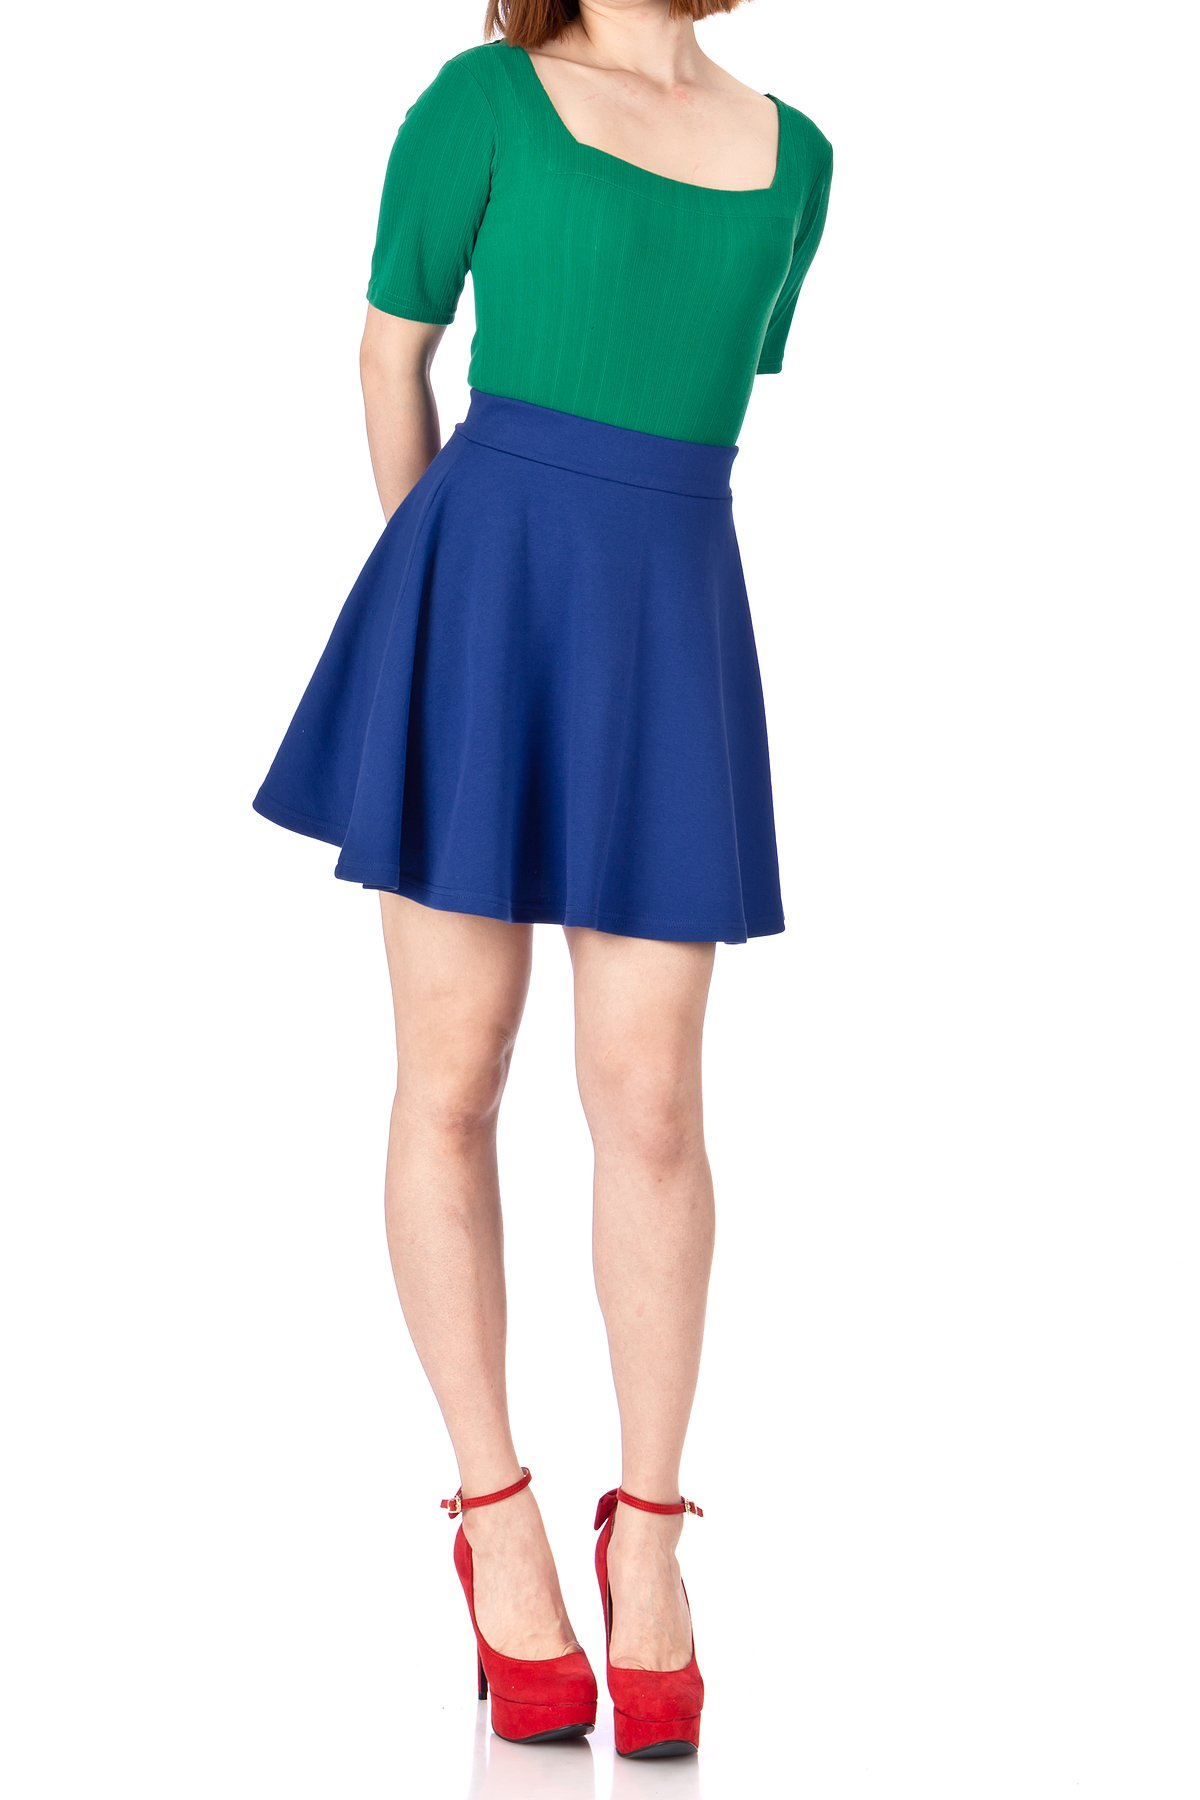 Basic Solid Stretchy Cotton High Waist line Flared Skater Mini Skirt Cobalt Blue 02